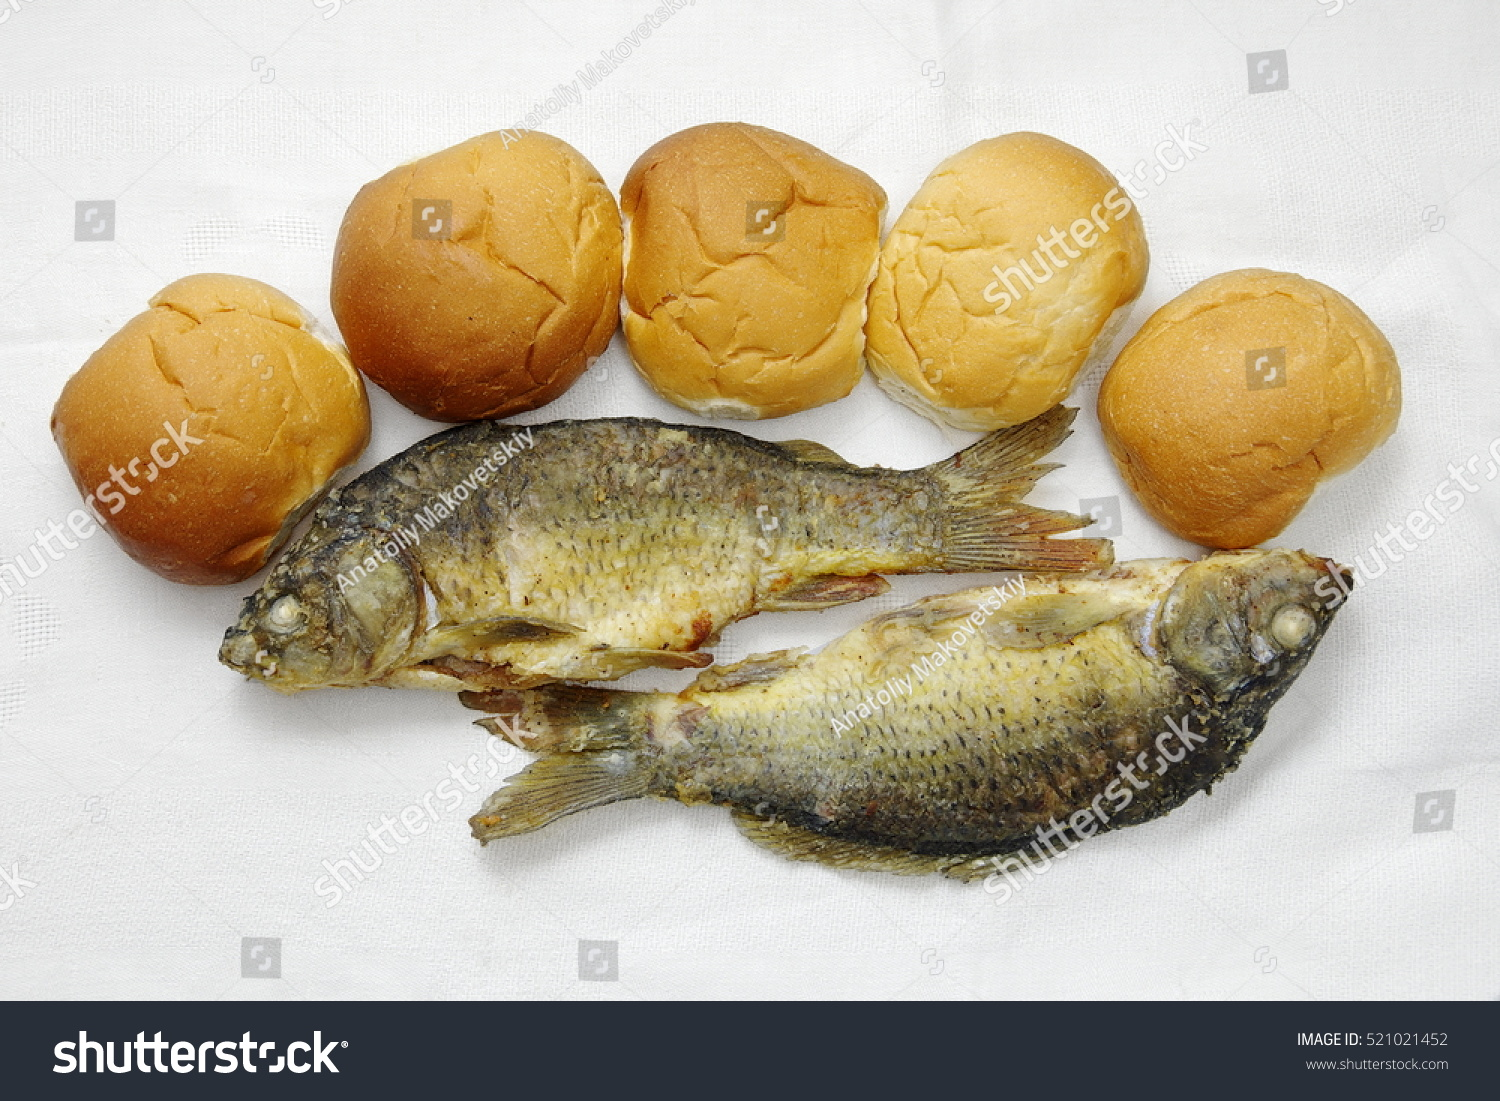 Five loaves two fishes stock photo 521021452 shutterstock for Five loaves two fish